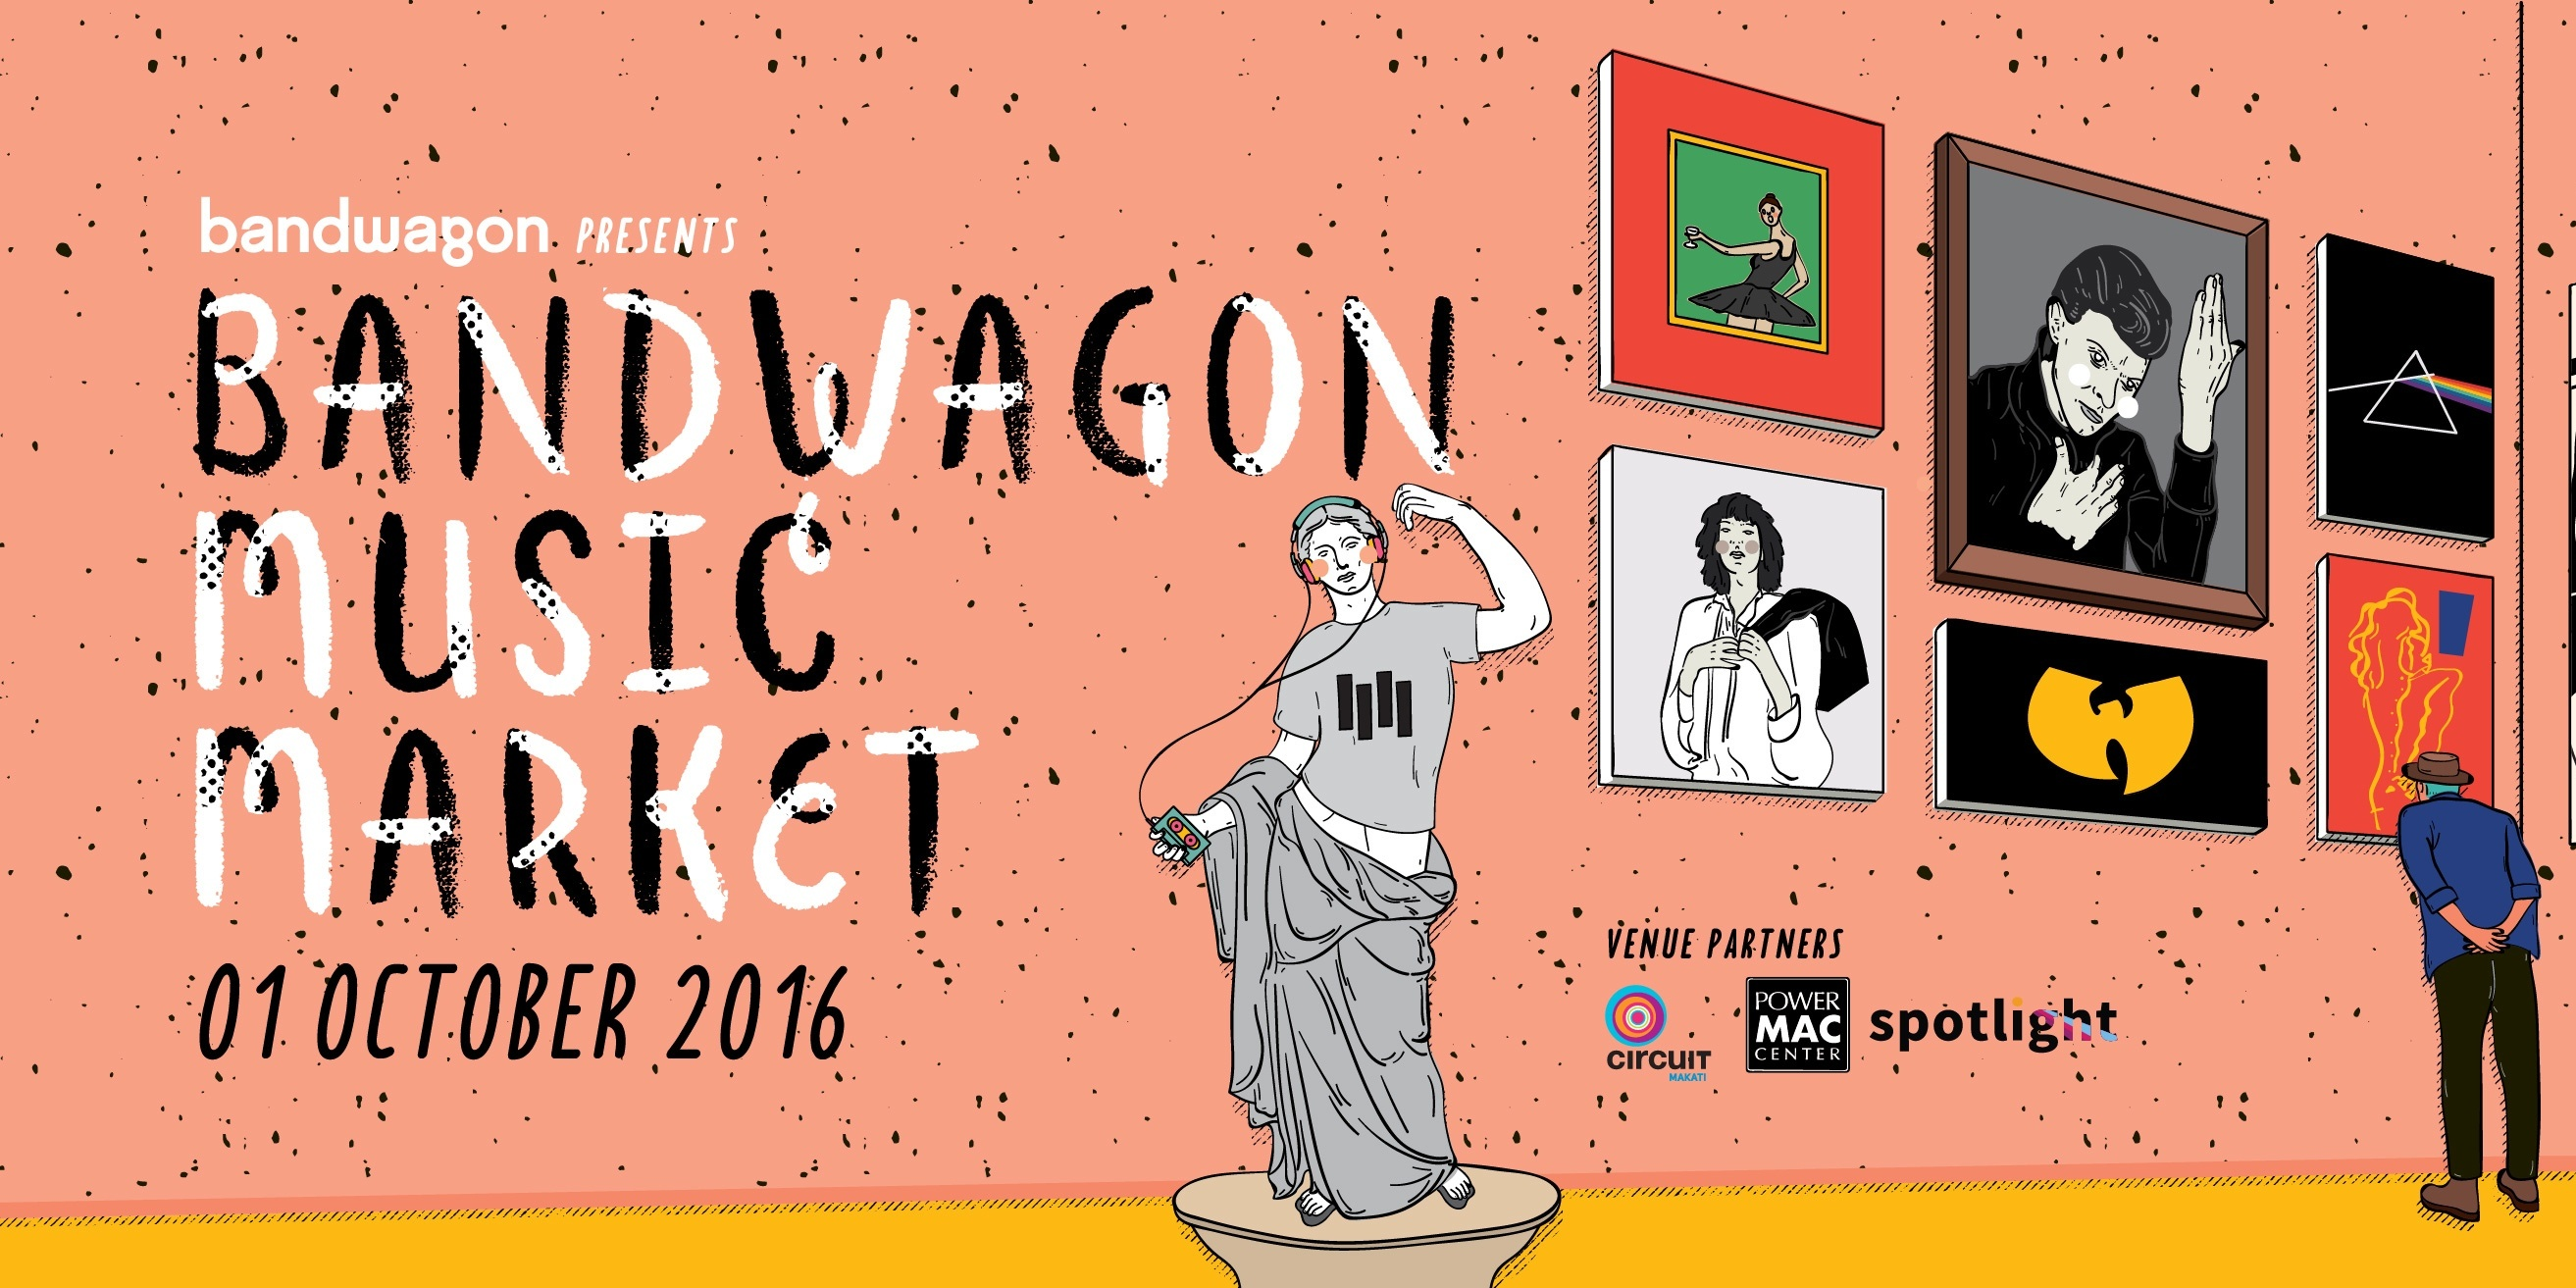 The Guide to Bandwagon Music Market 2016